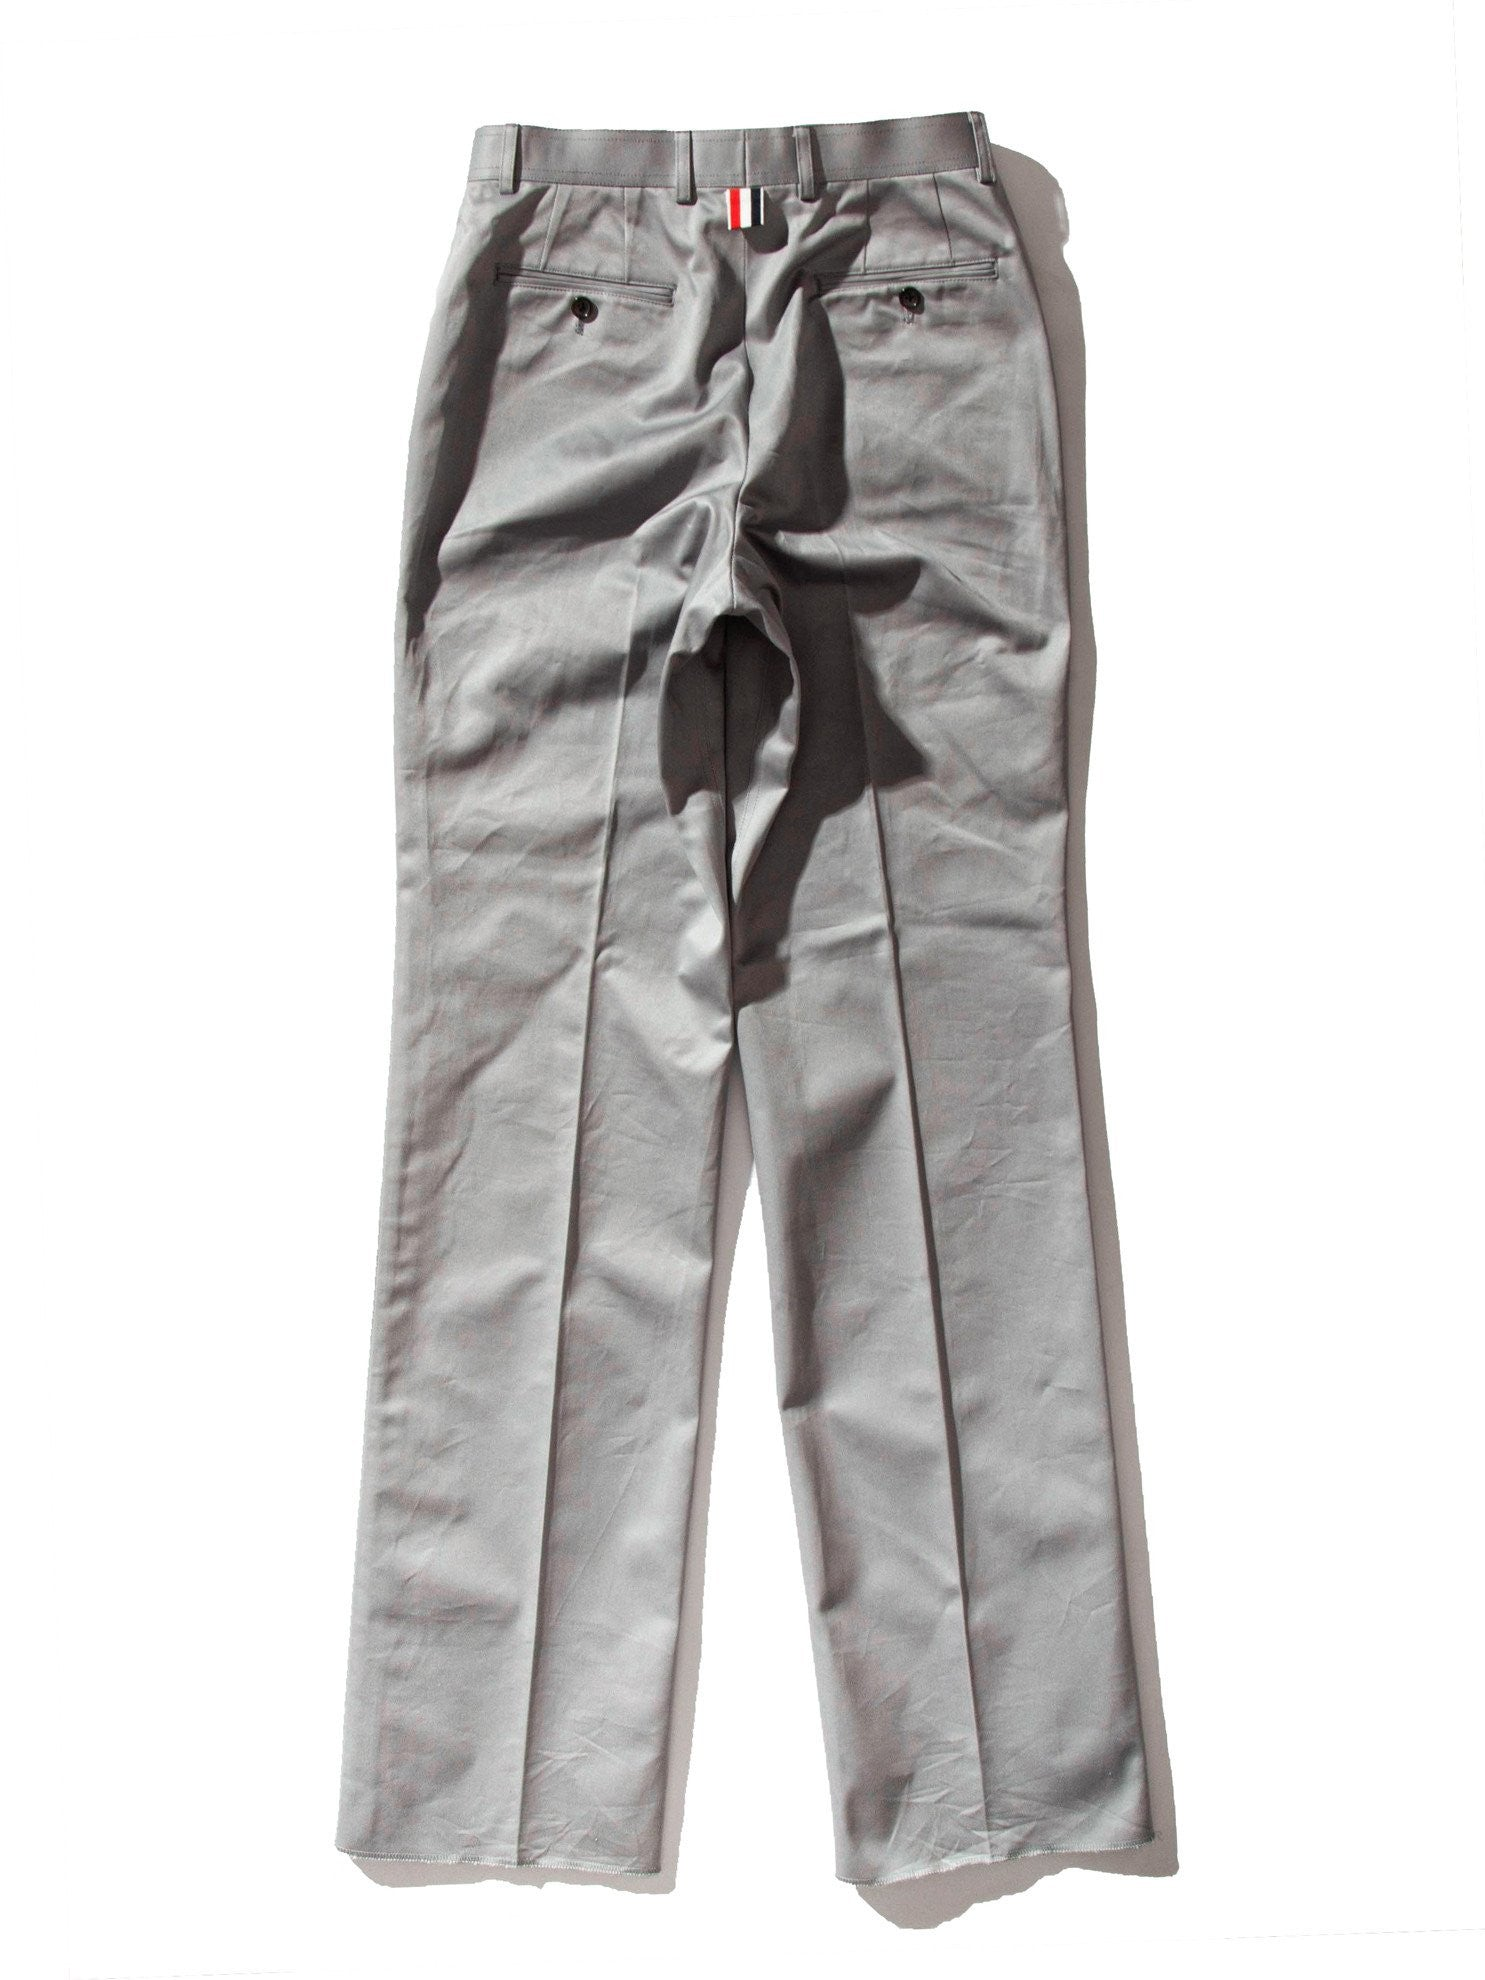 Med Grey Unconstructed Straight Leg Chino (Light Weight High Density Cotton Twill) 8